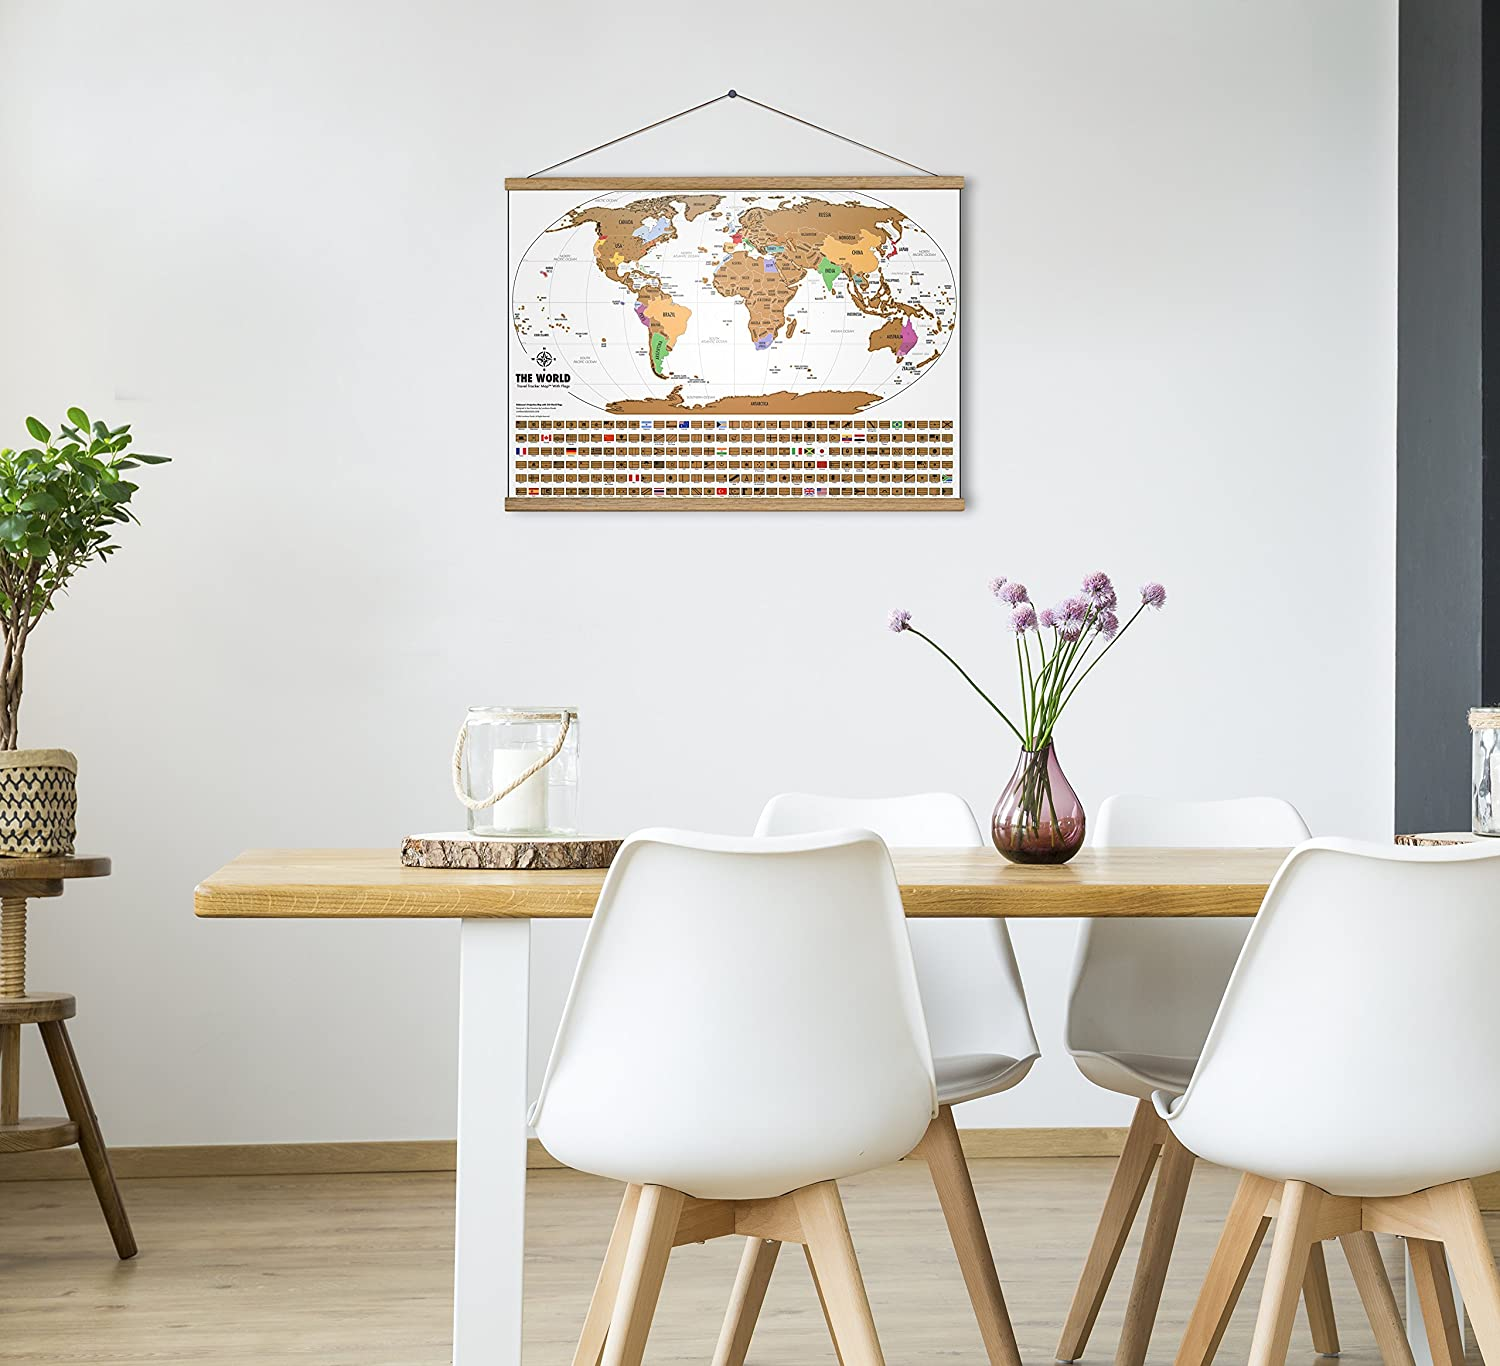 Landmass Goods US States Outlined Clean Design and Vibrant Colors to Make Your Story Come to Life The Gift Travelers Want Landmass Scratch Off World Map Poster 17x24 Black and Gold Travel Tracker Map w//Flags